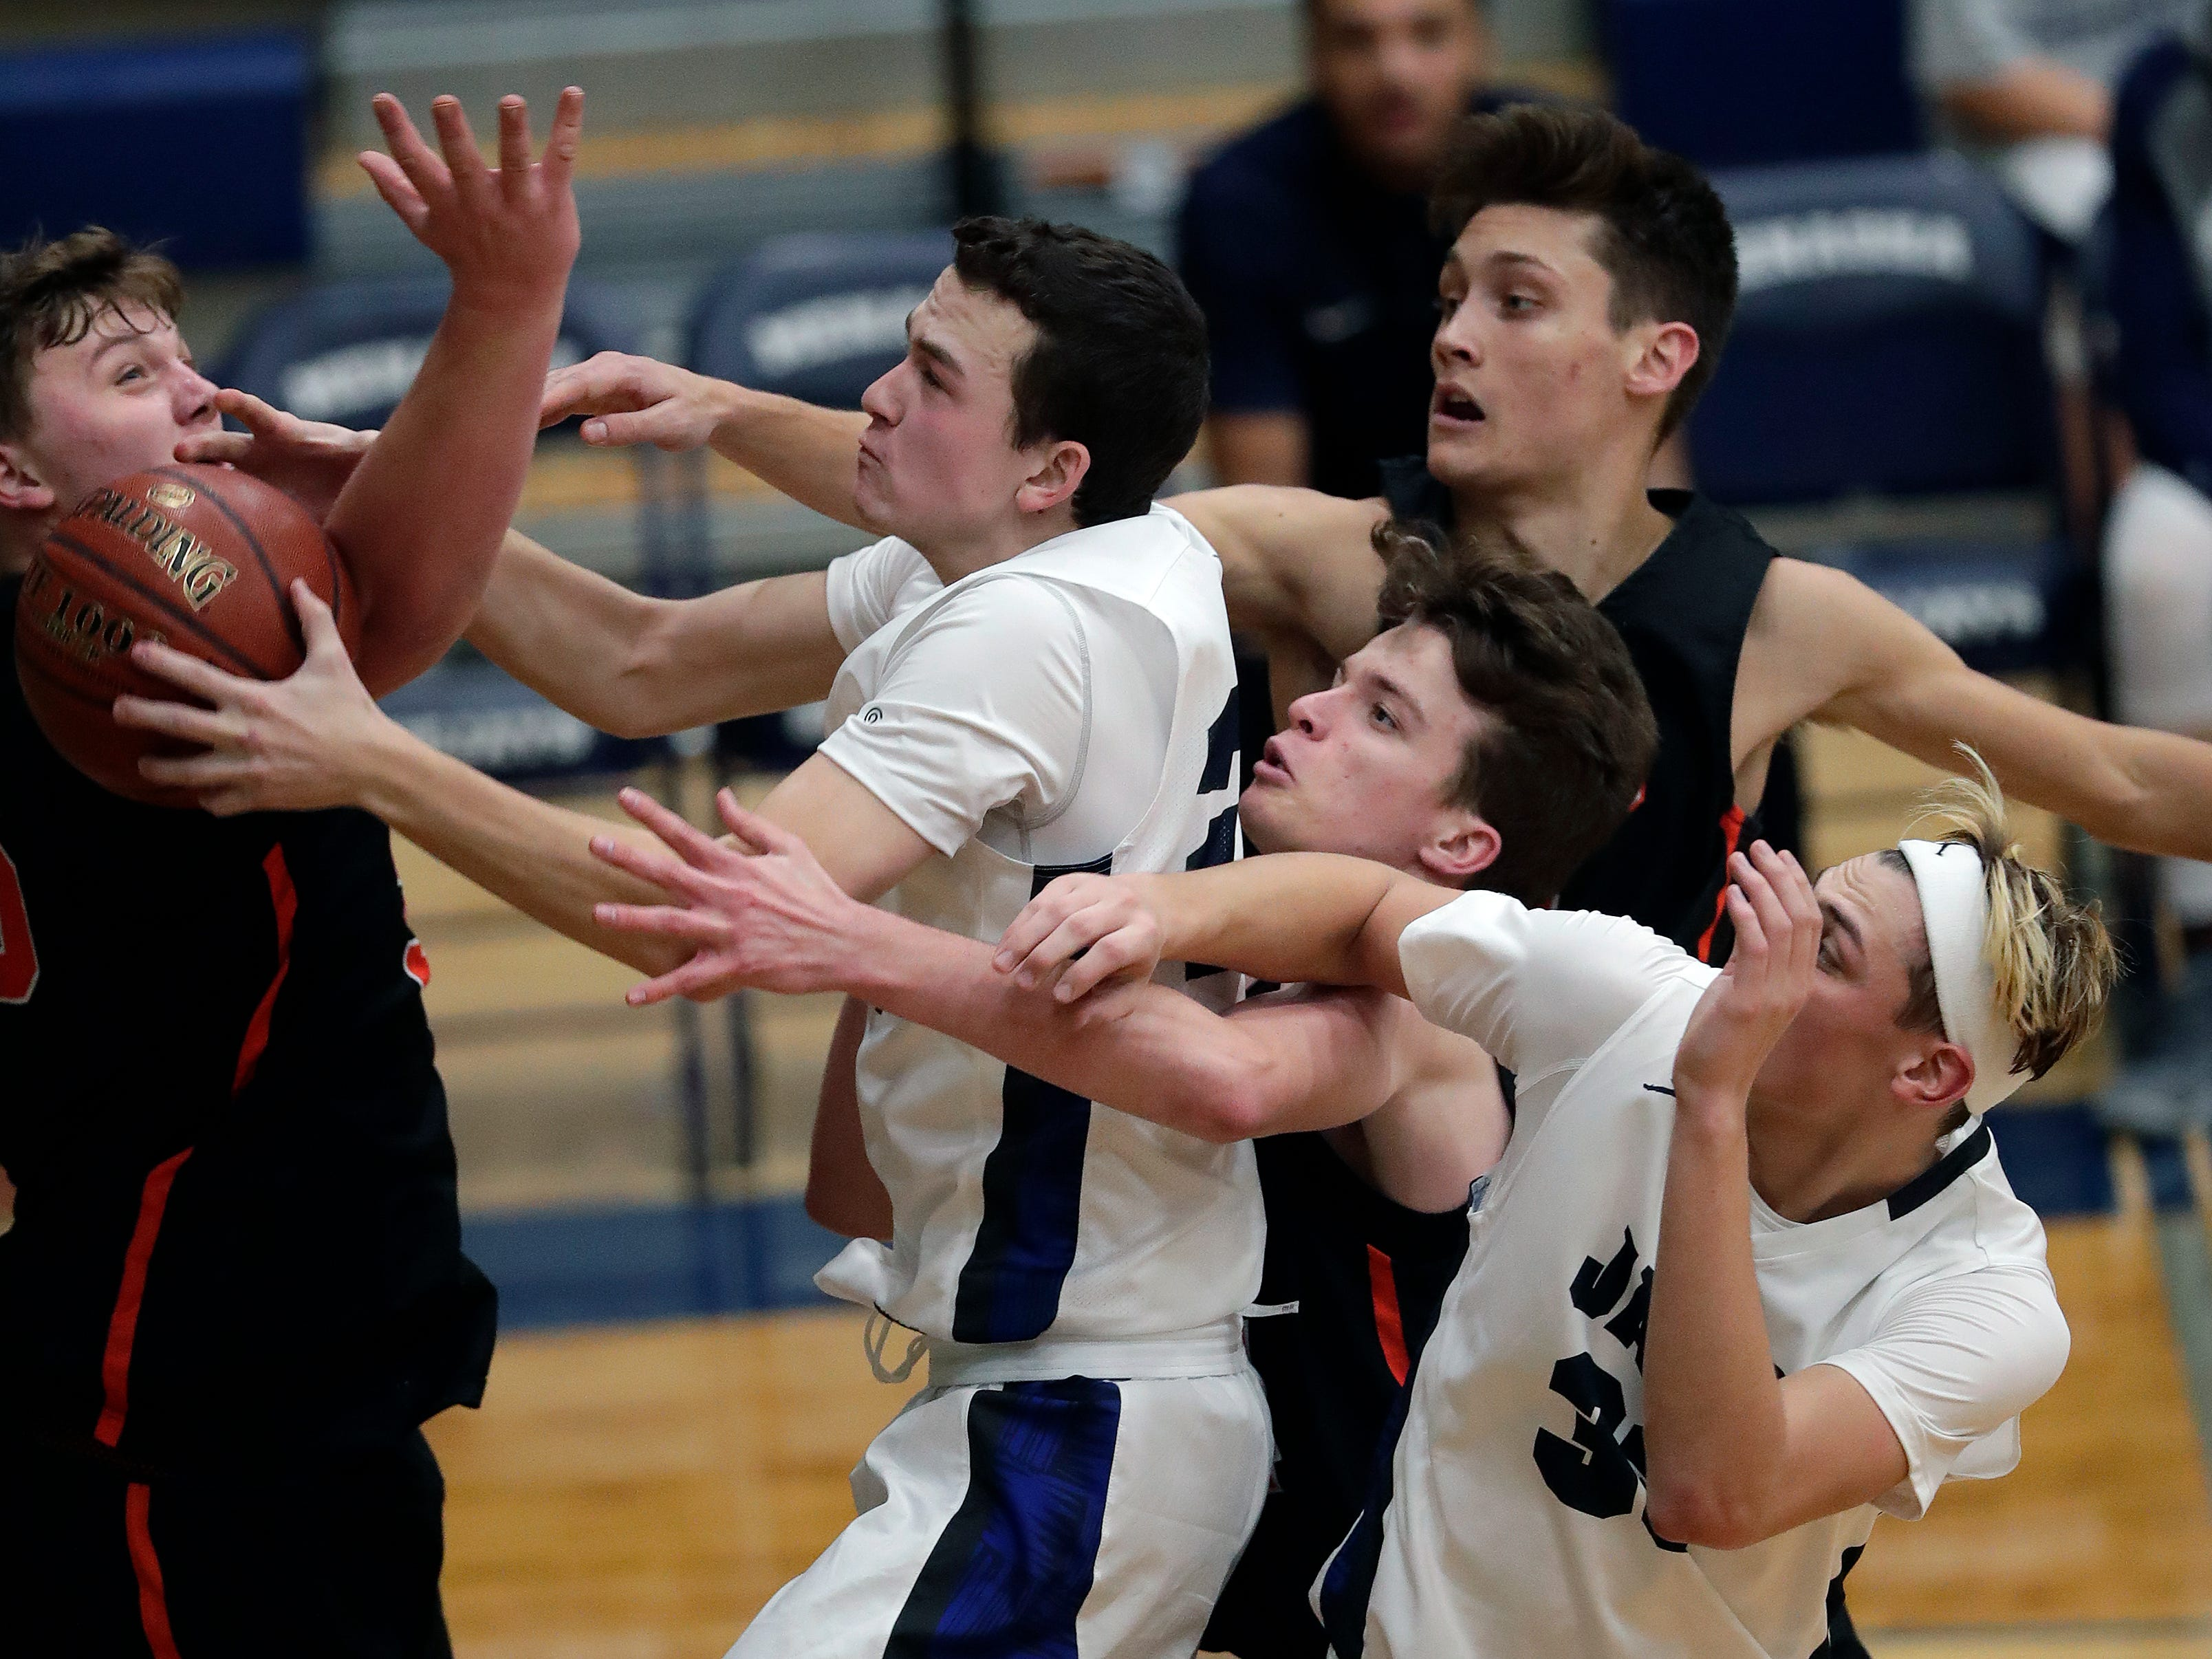 Menasha High School's Duncan Dotterweich, center, pulls down an offensive rebound against West De Pere High School defenders during their boys basketball game Tuesday, December 11, 2018, in Menasha, Wis. 